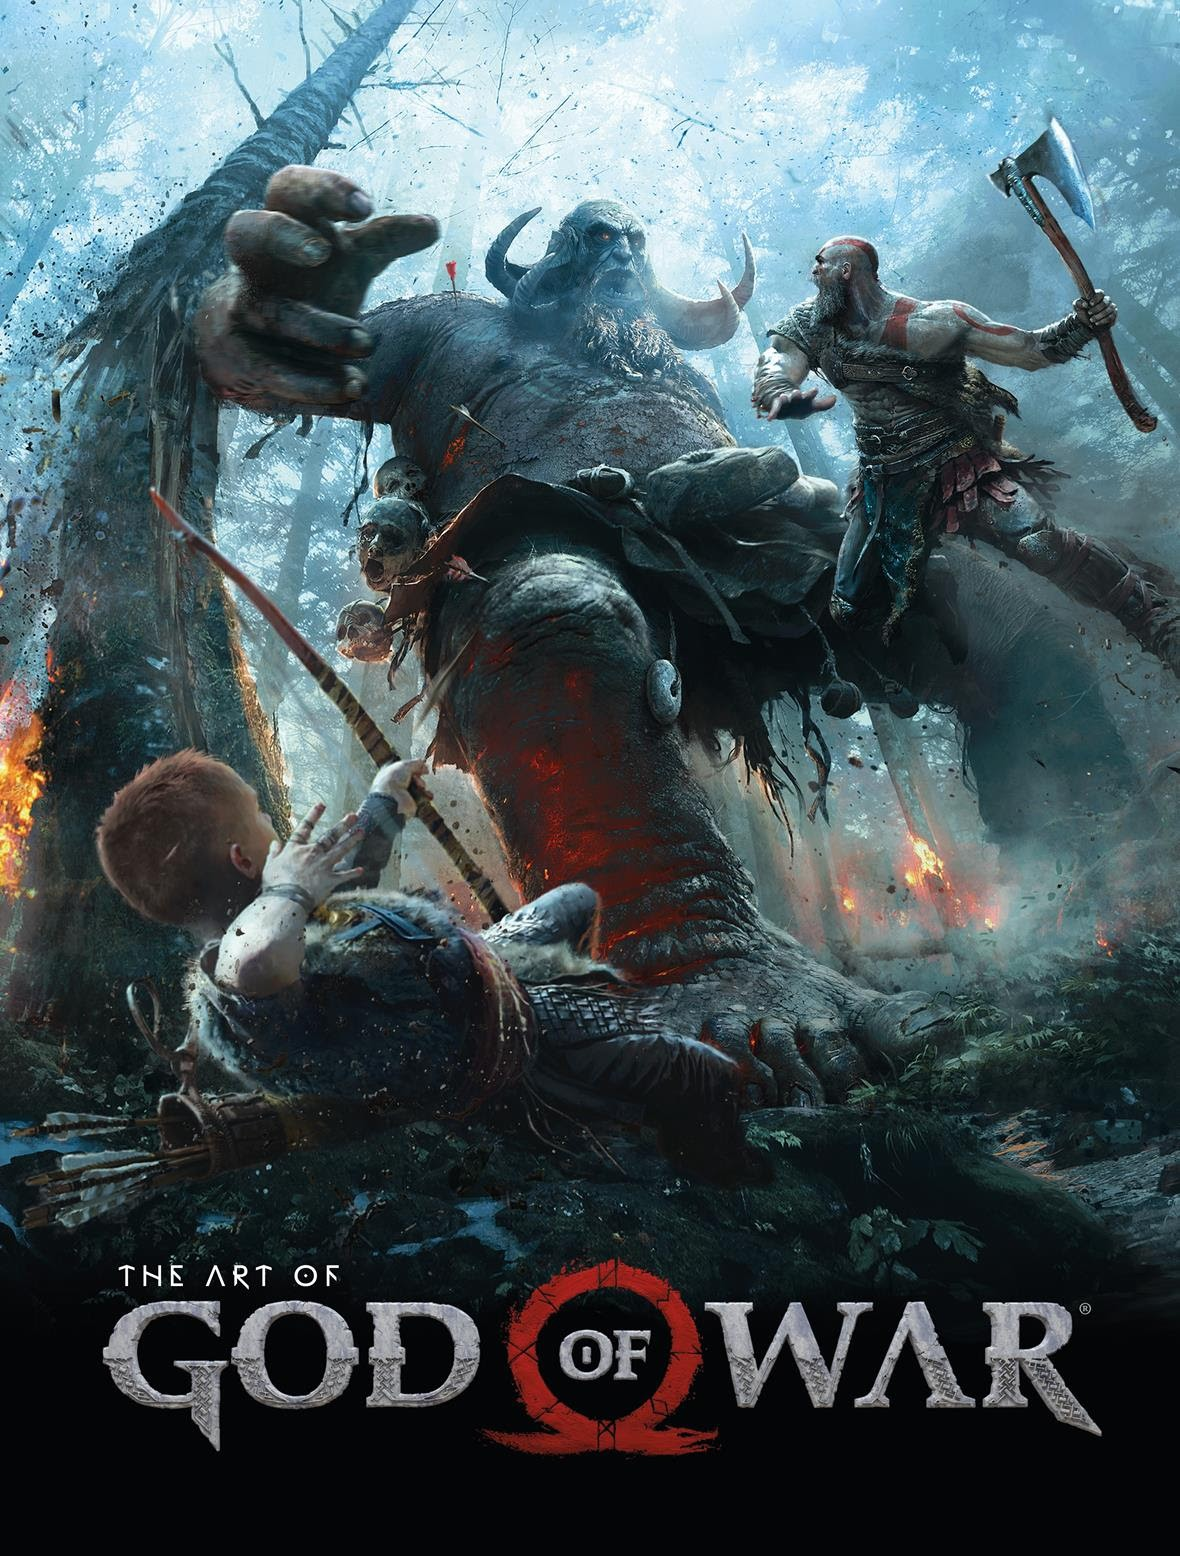 The Art of God of War and God of War Comics in 2018 | Graphic Policy